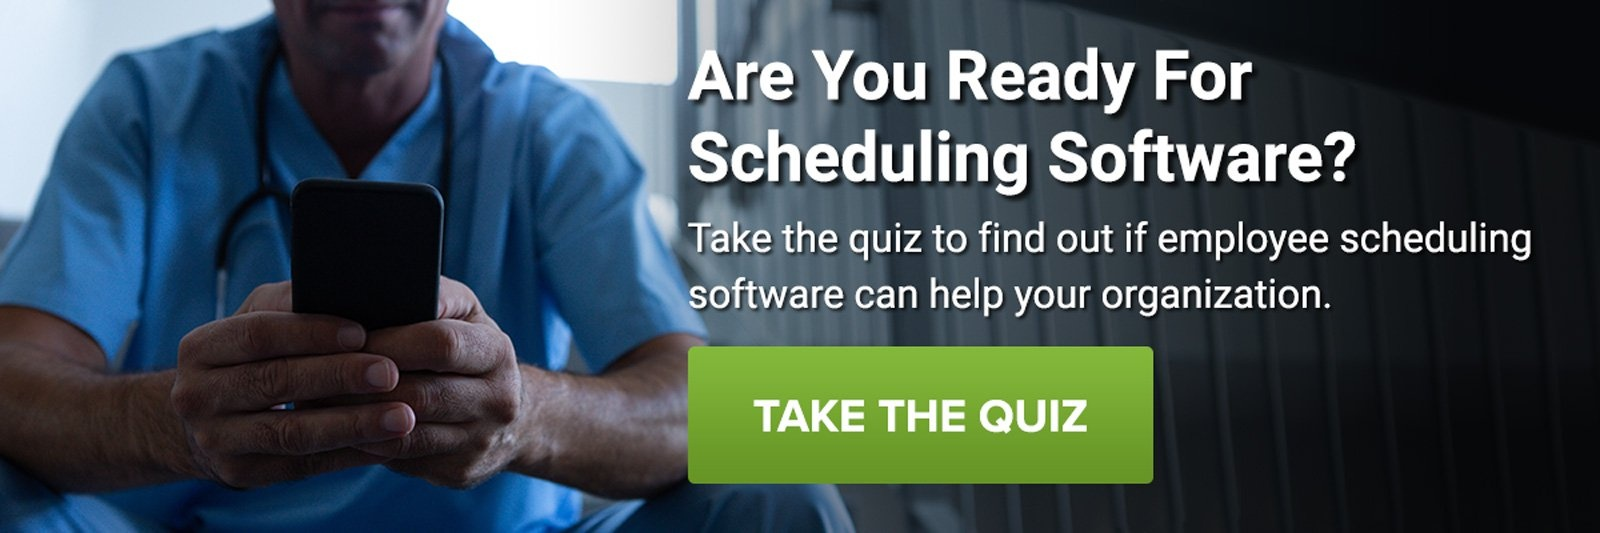 Take the quiz to find out if employee scheduling software can help your organization.